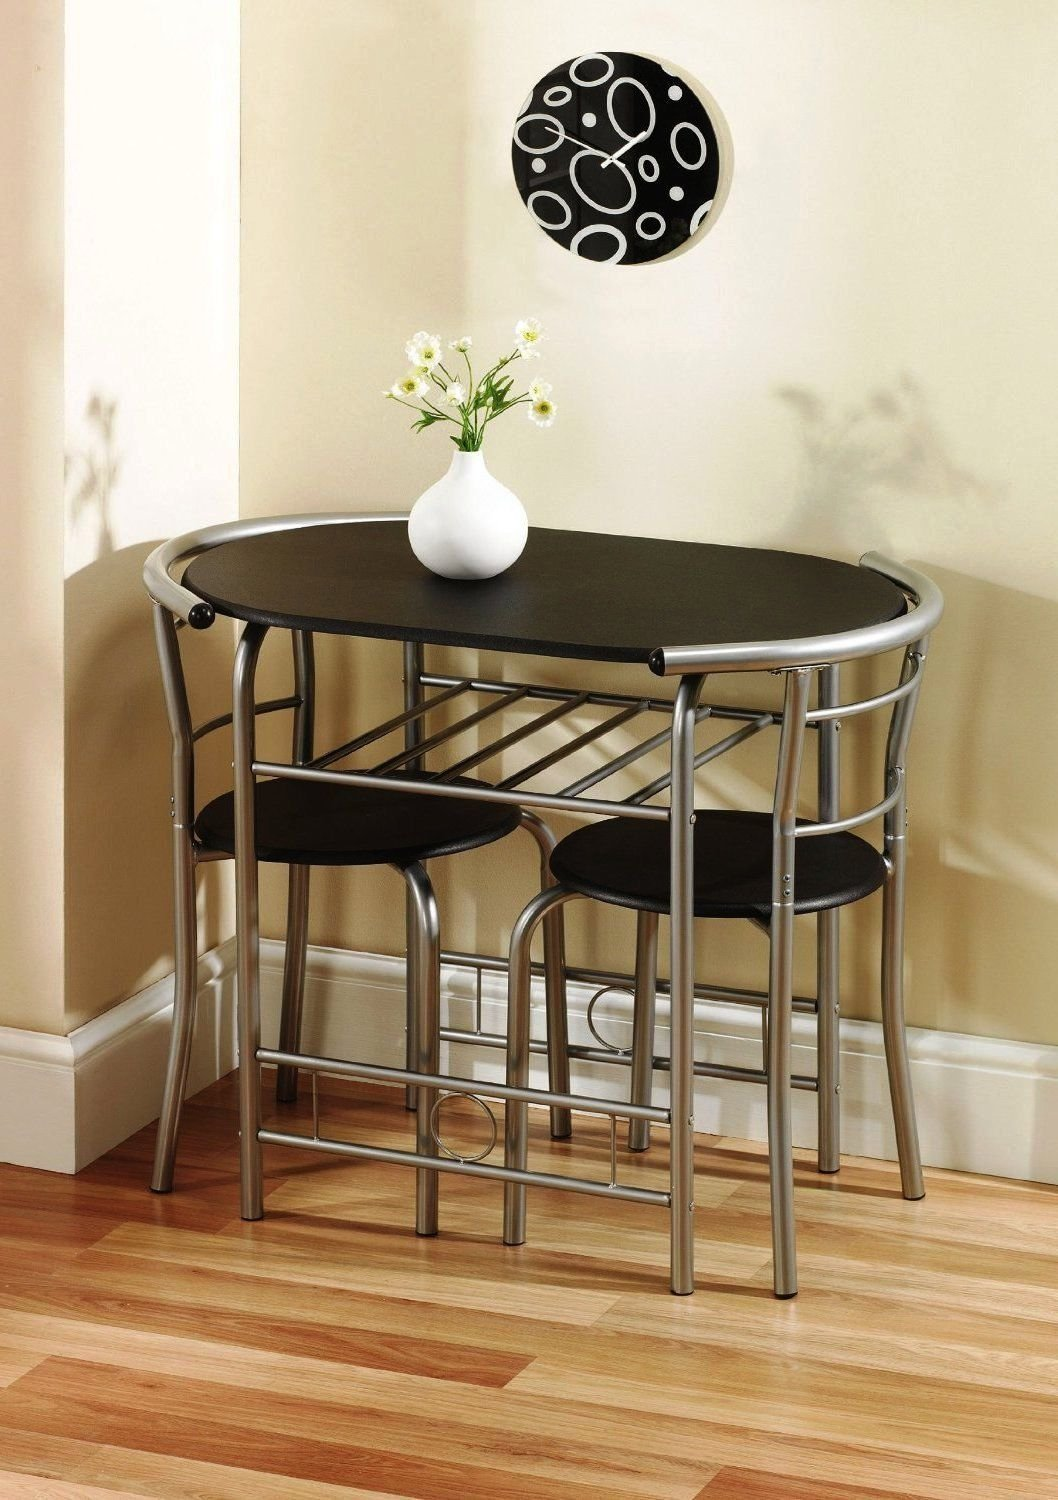 Delightful Dining Table For Two Part - 13: Amazon.com - Krasavic 3 Piece Kitchen Dining Table Set For 2 With Stack  Chairs, Wood Top Metal Finish, Black/Silver - Table U0026 Chair Sets